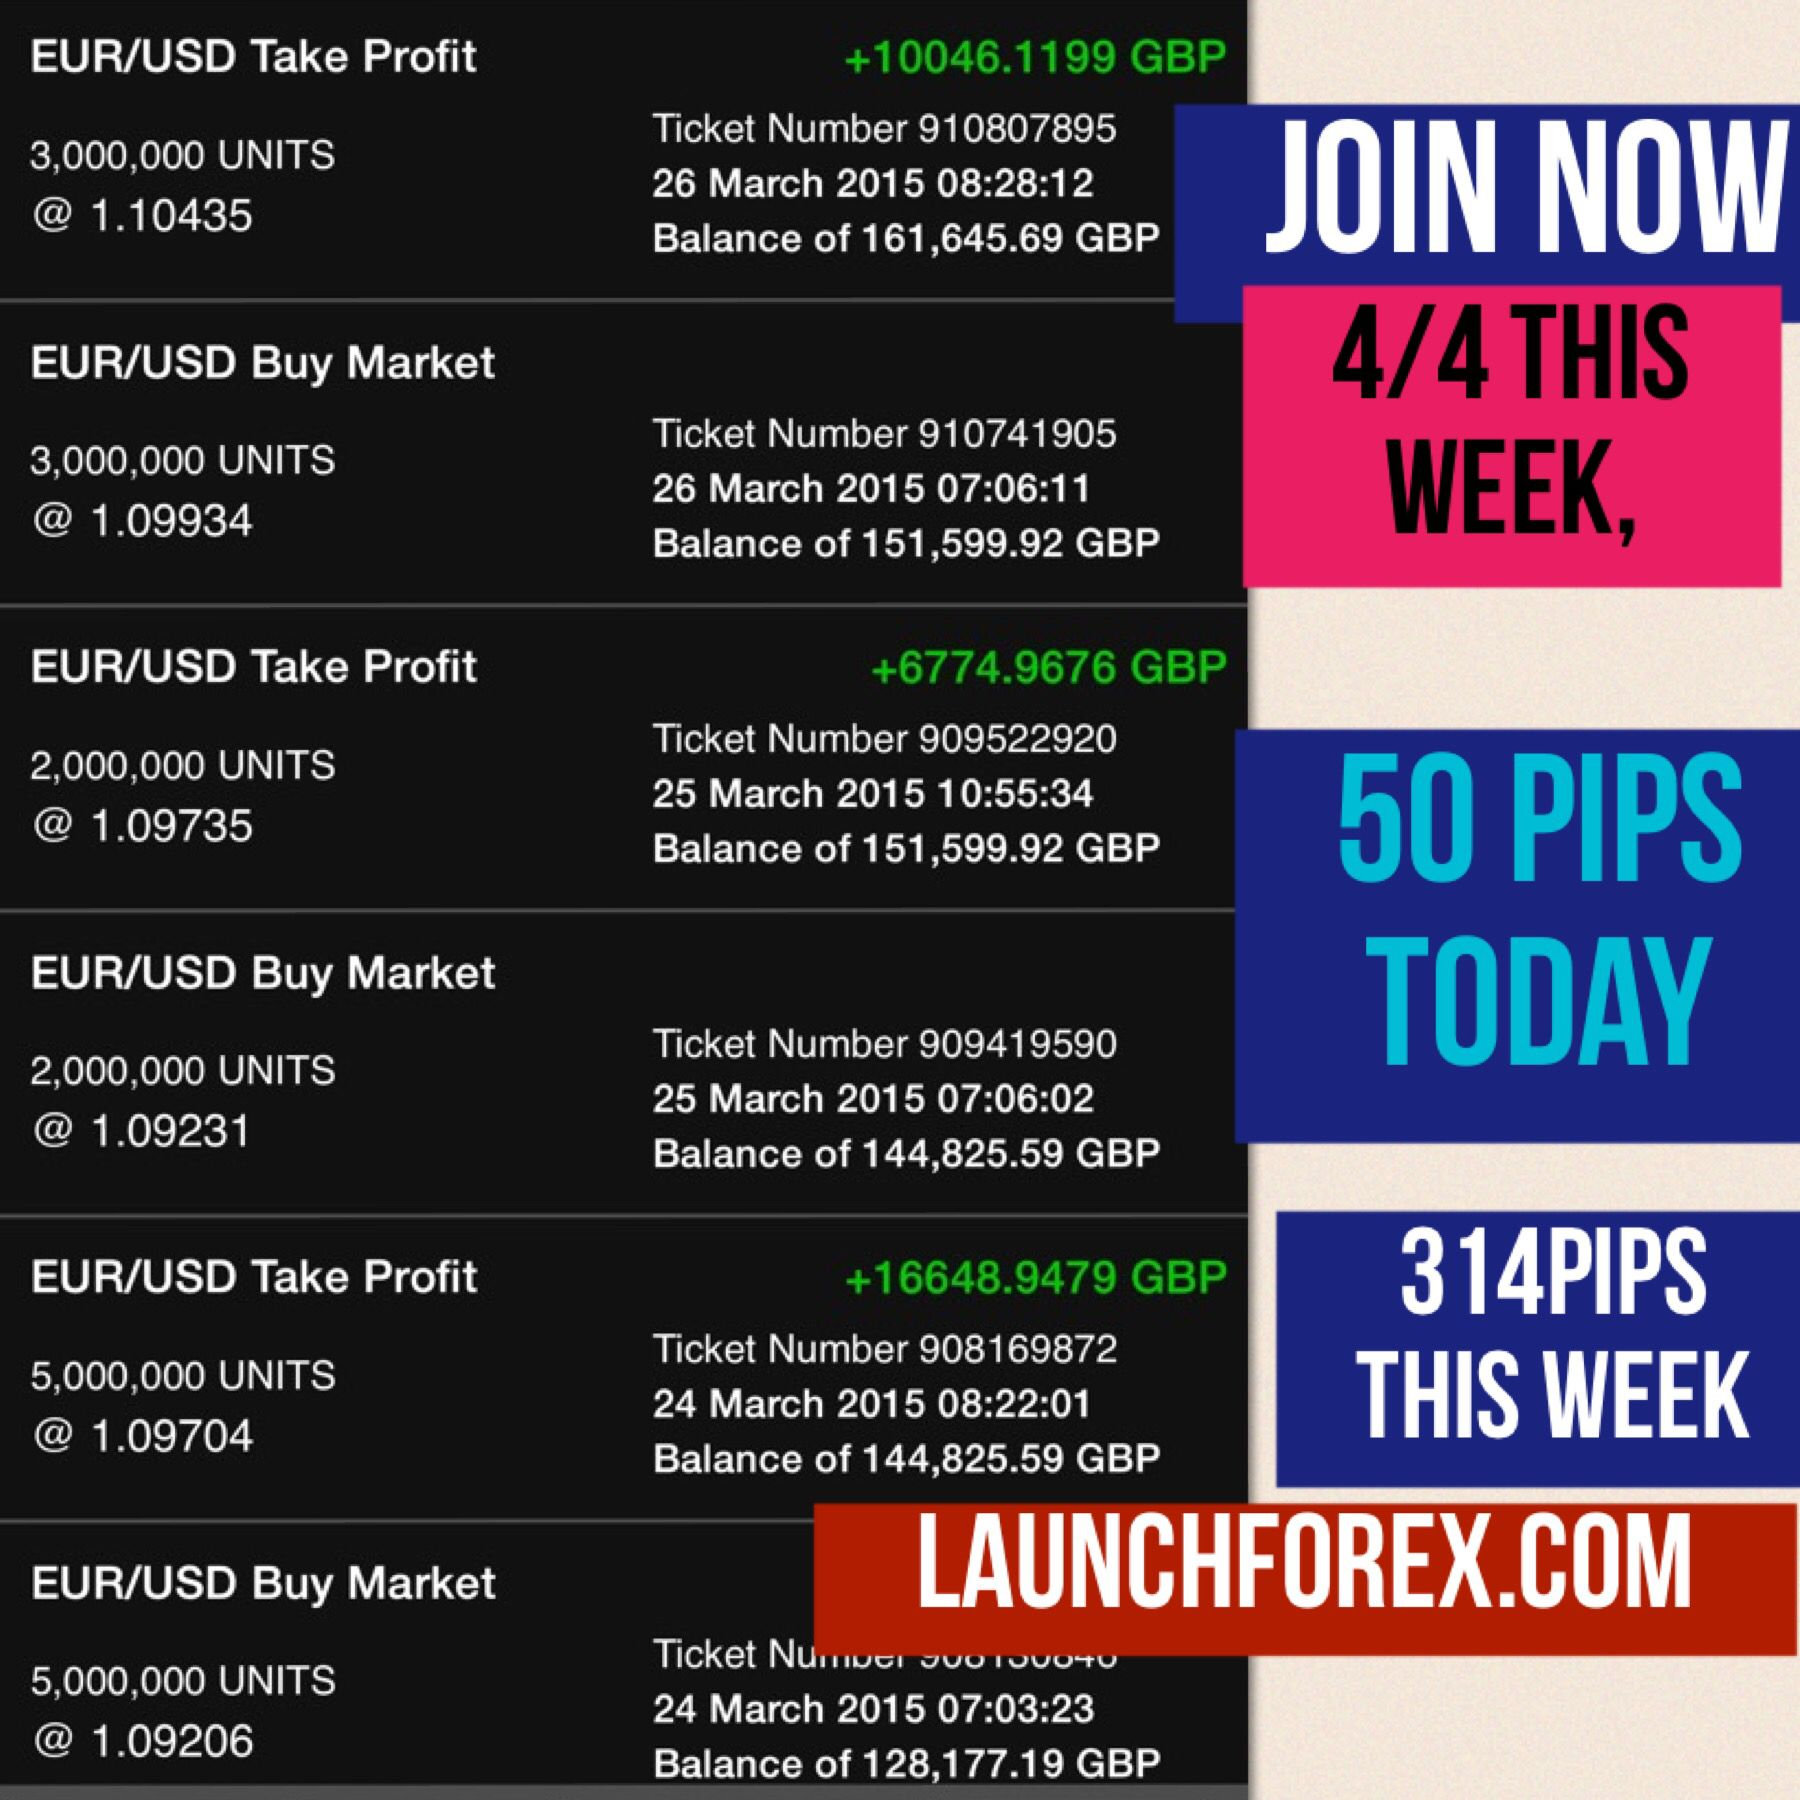 Www Launchforex Com Taken 50 Pips With Today S Signal Join Now